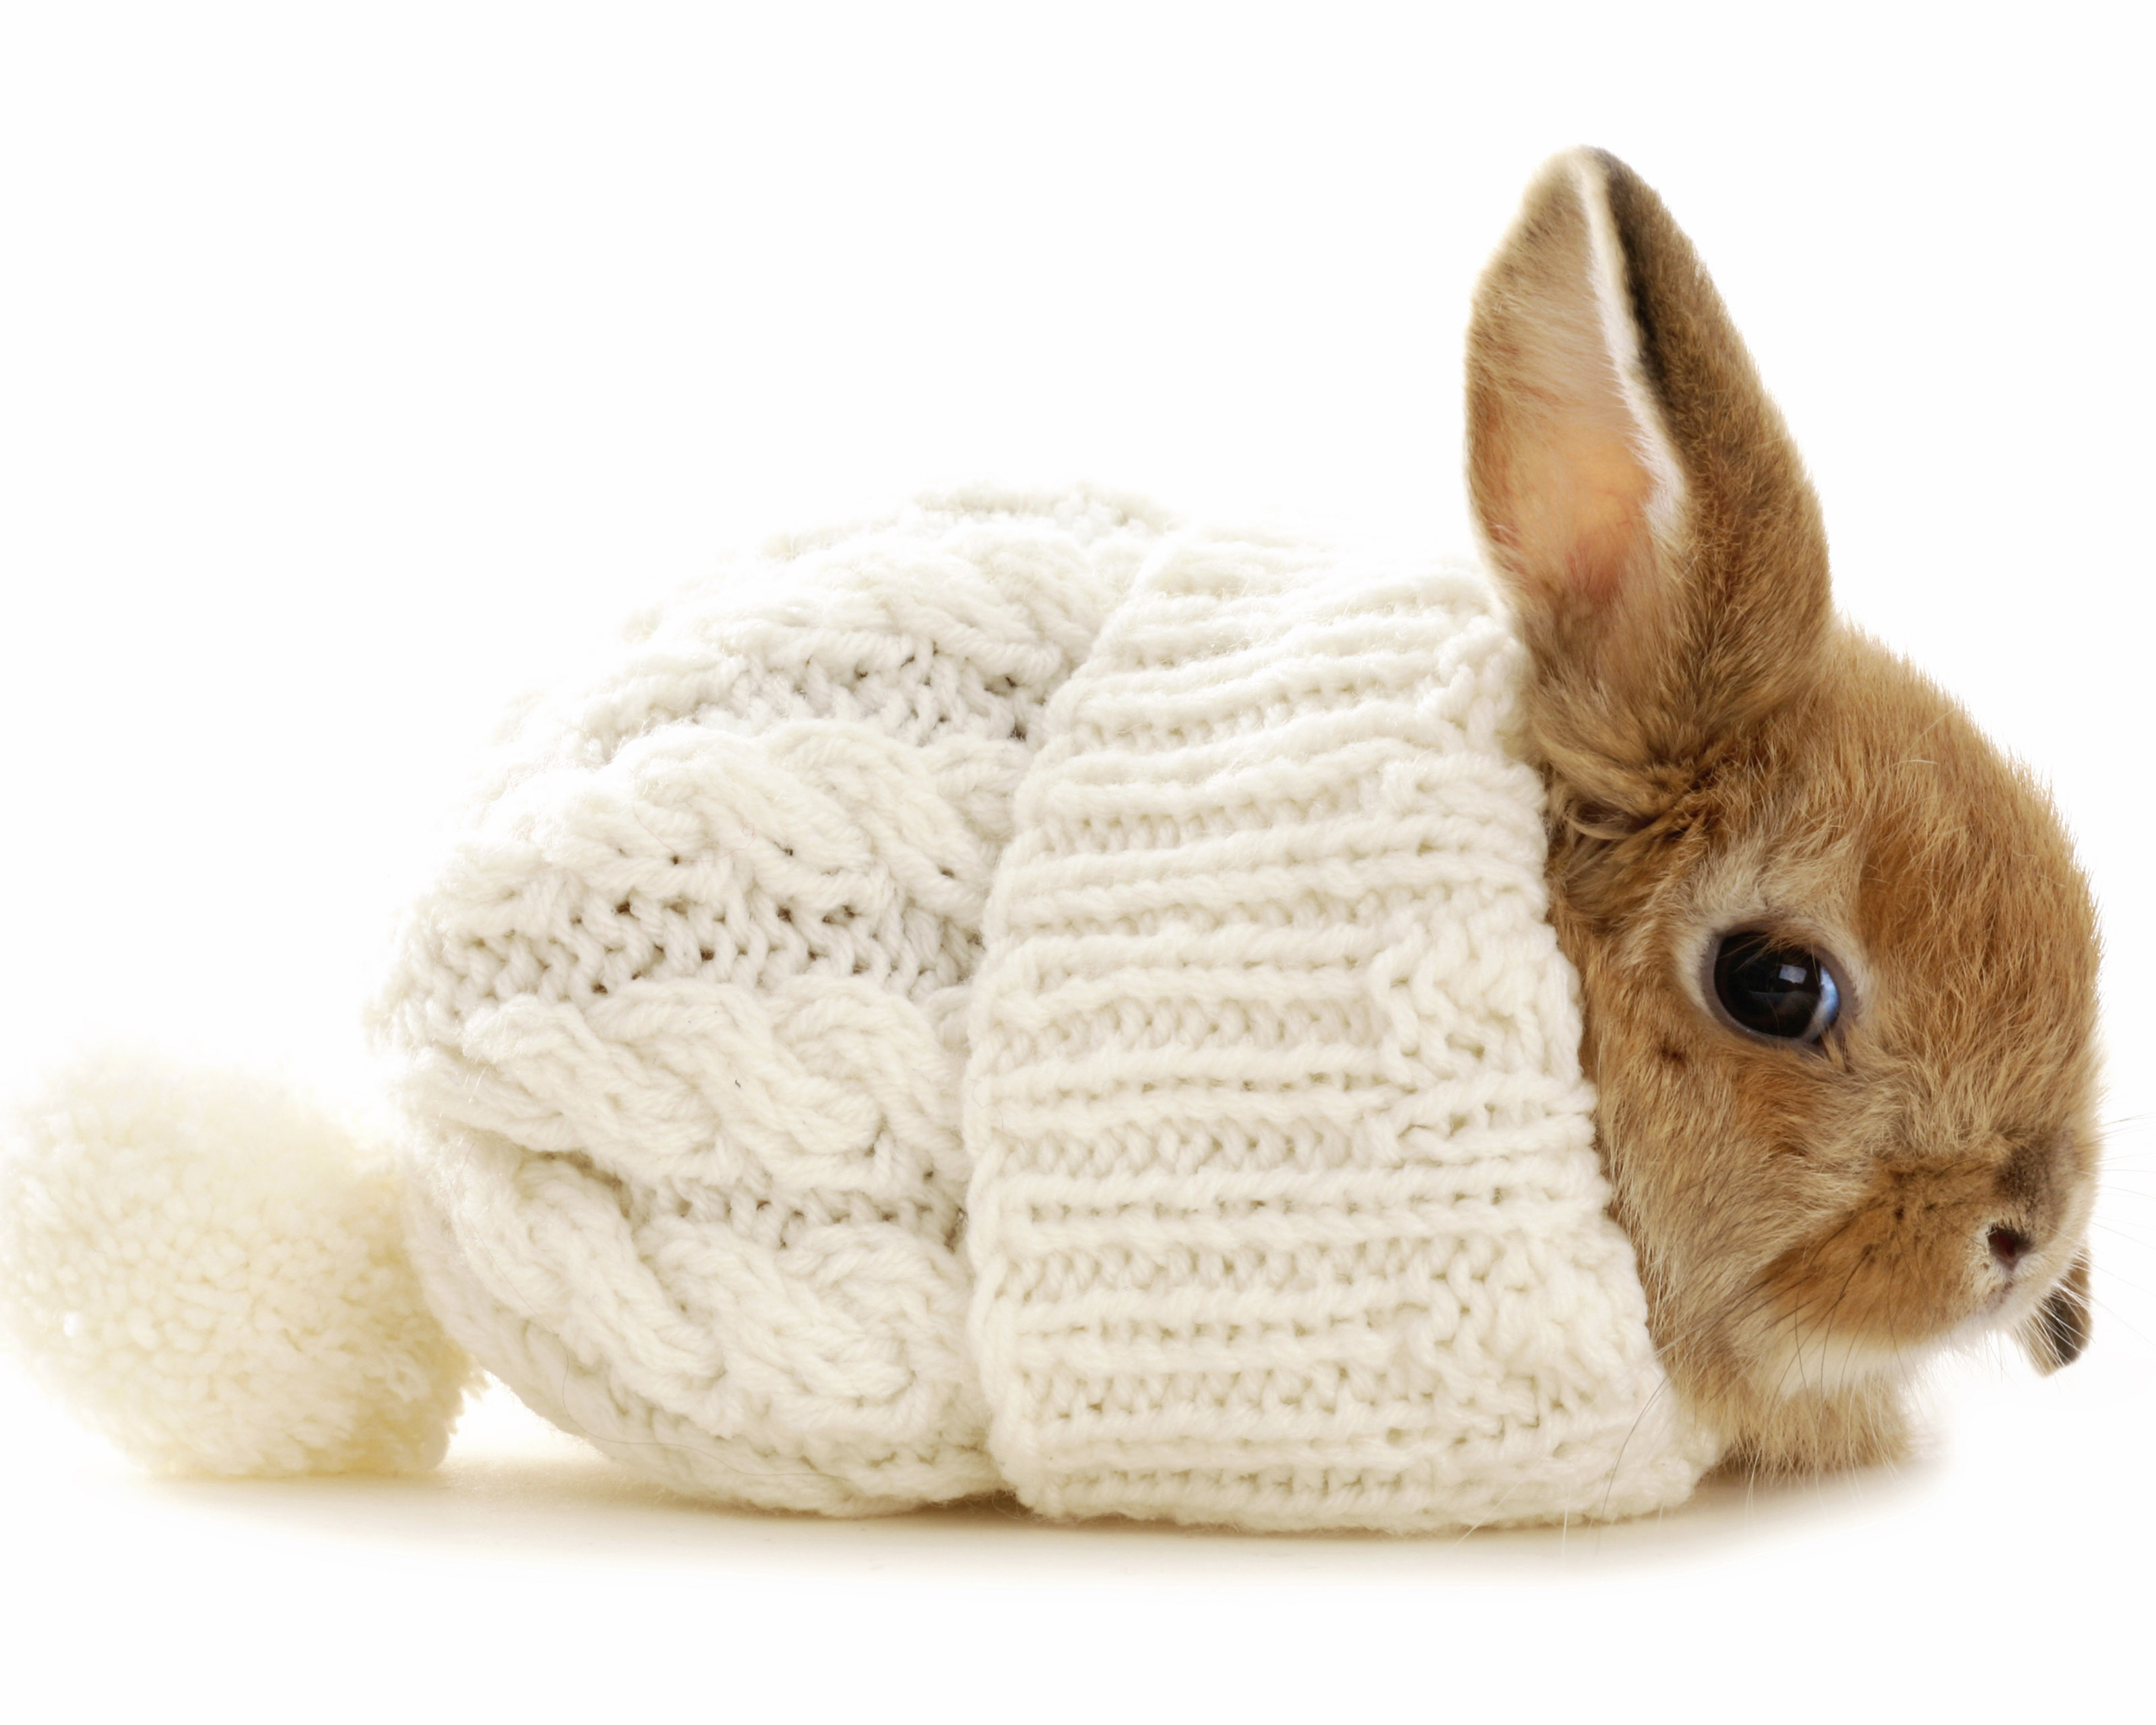 Hopping mad about Rabbits? | Tauranga Veterinary Services